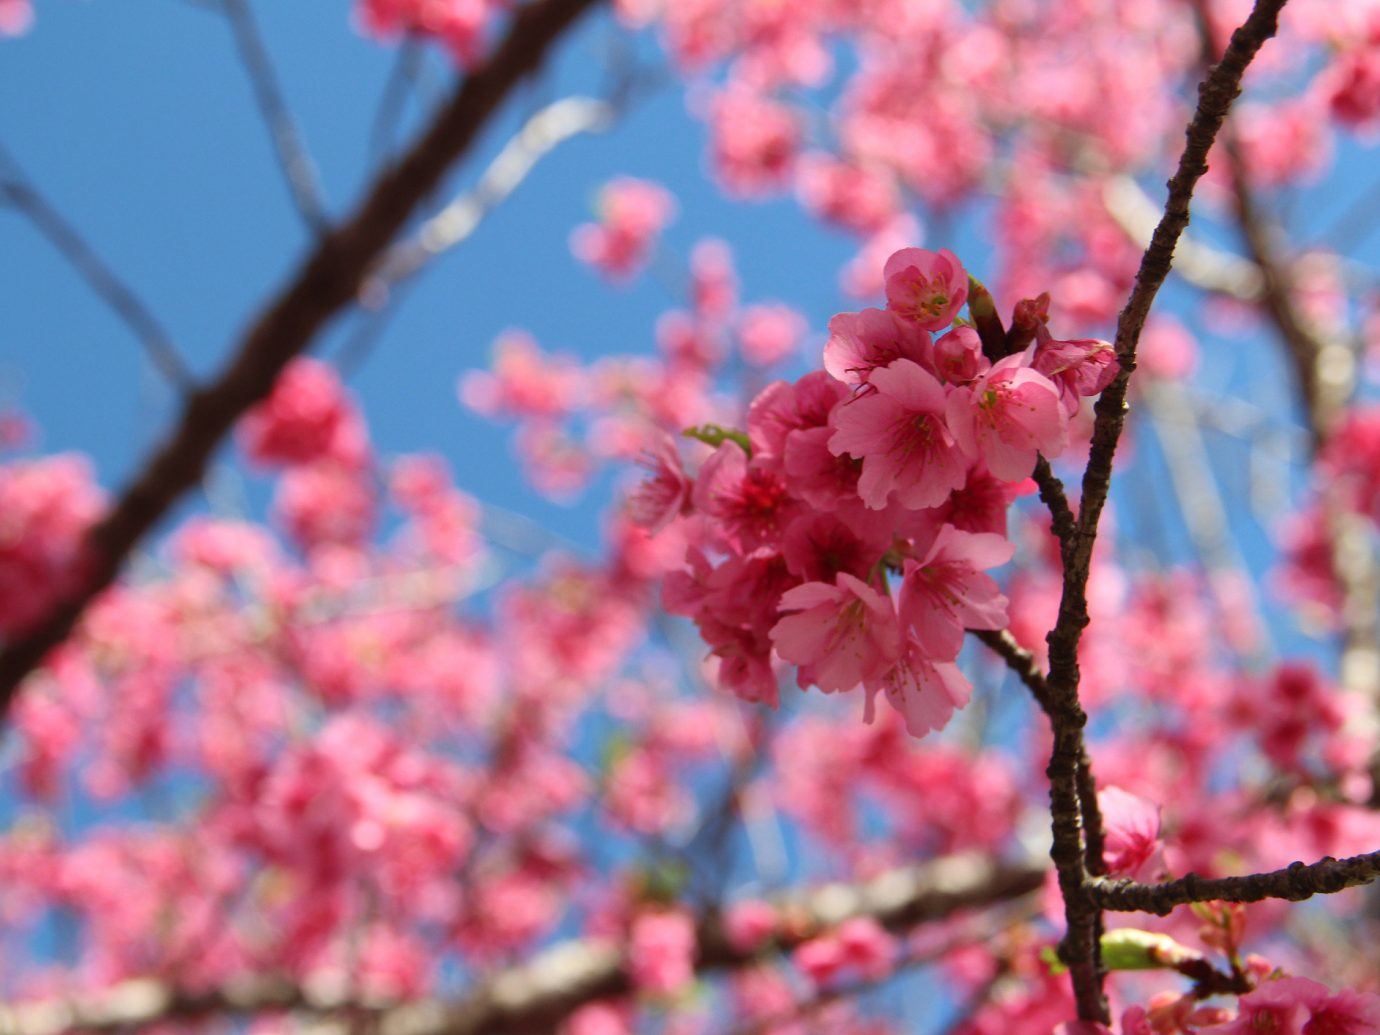 Offbeat outdoor flower blossom plant colorful branch cherry blossom fruit spring season food tree petal produce apple colored branchlet